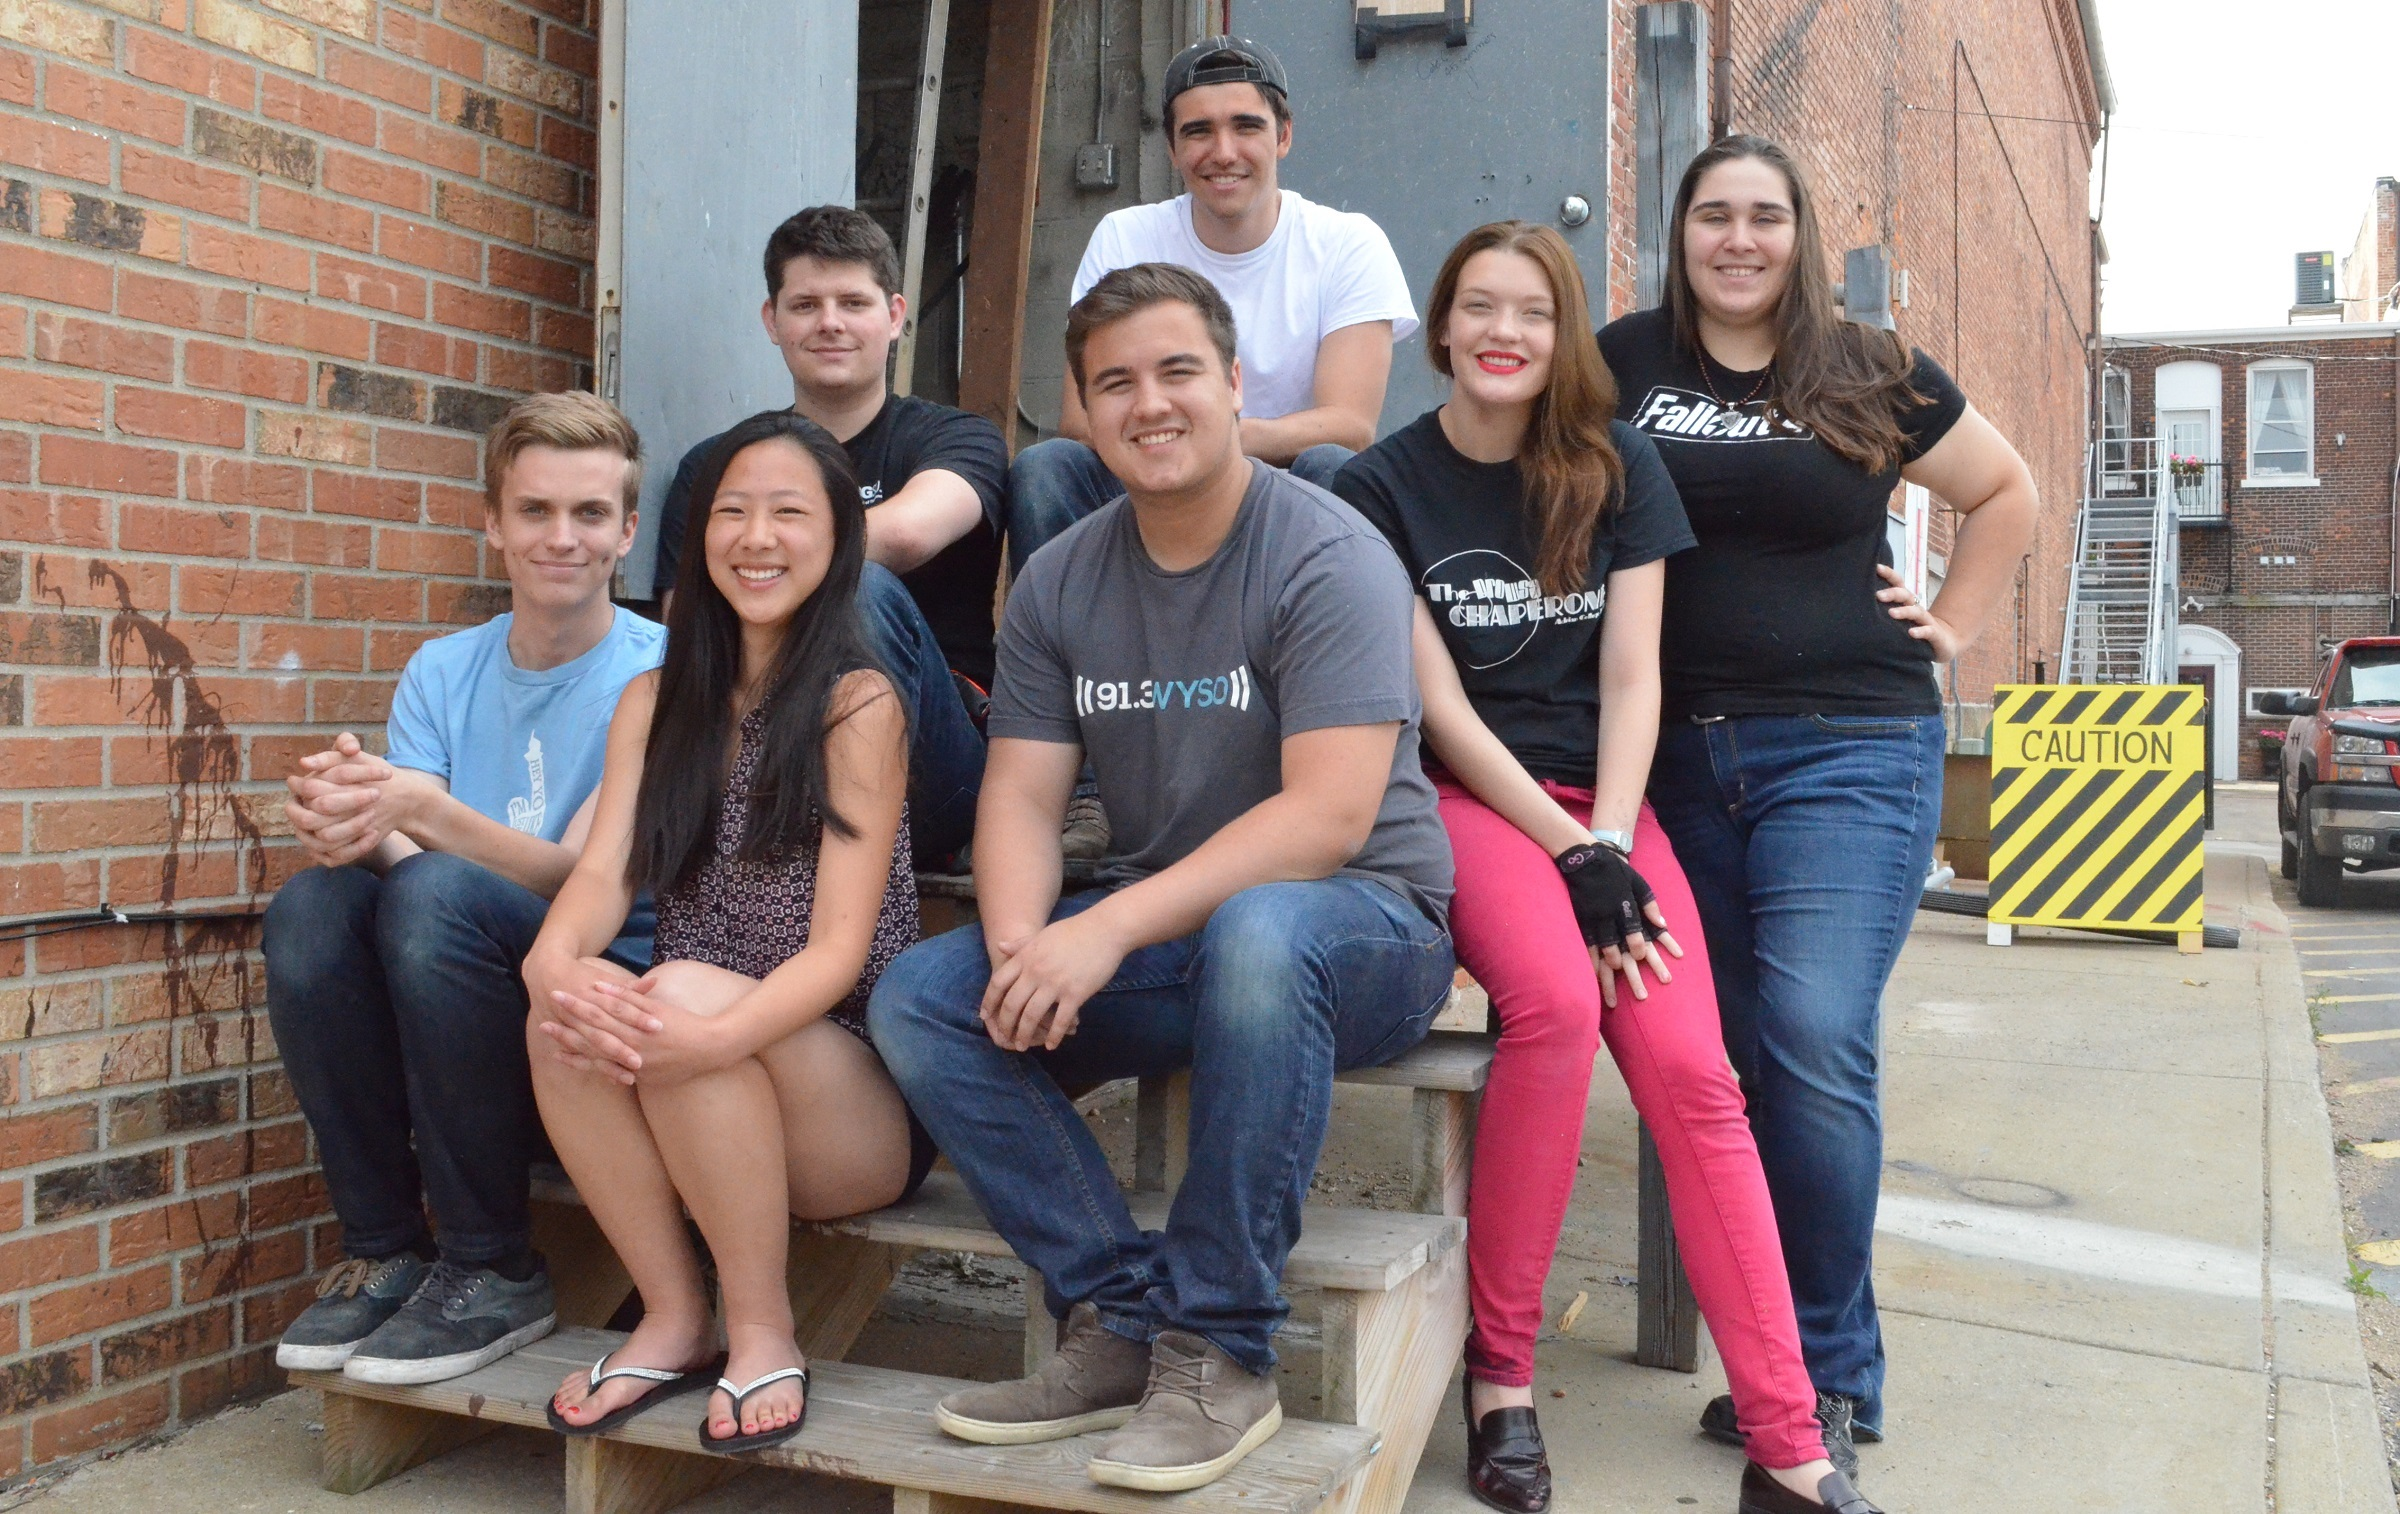 Please join us in welcoming the 2016 summer interns